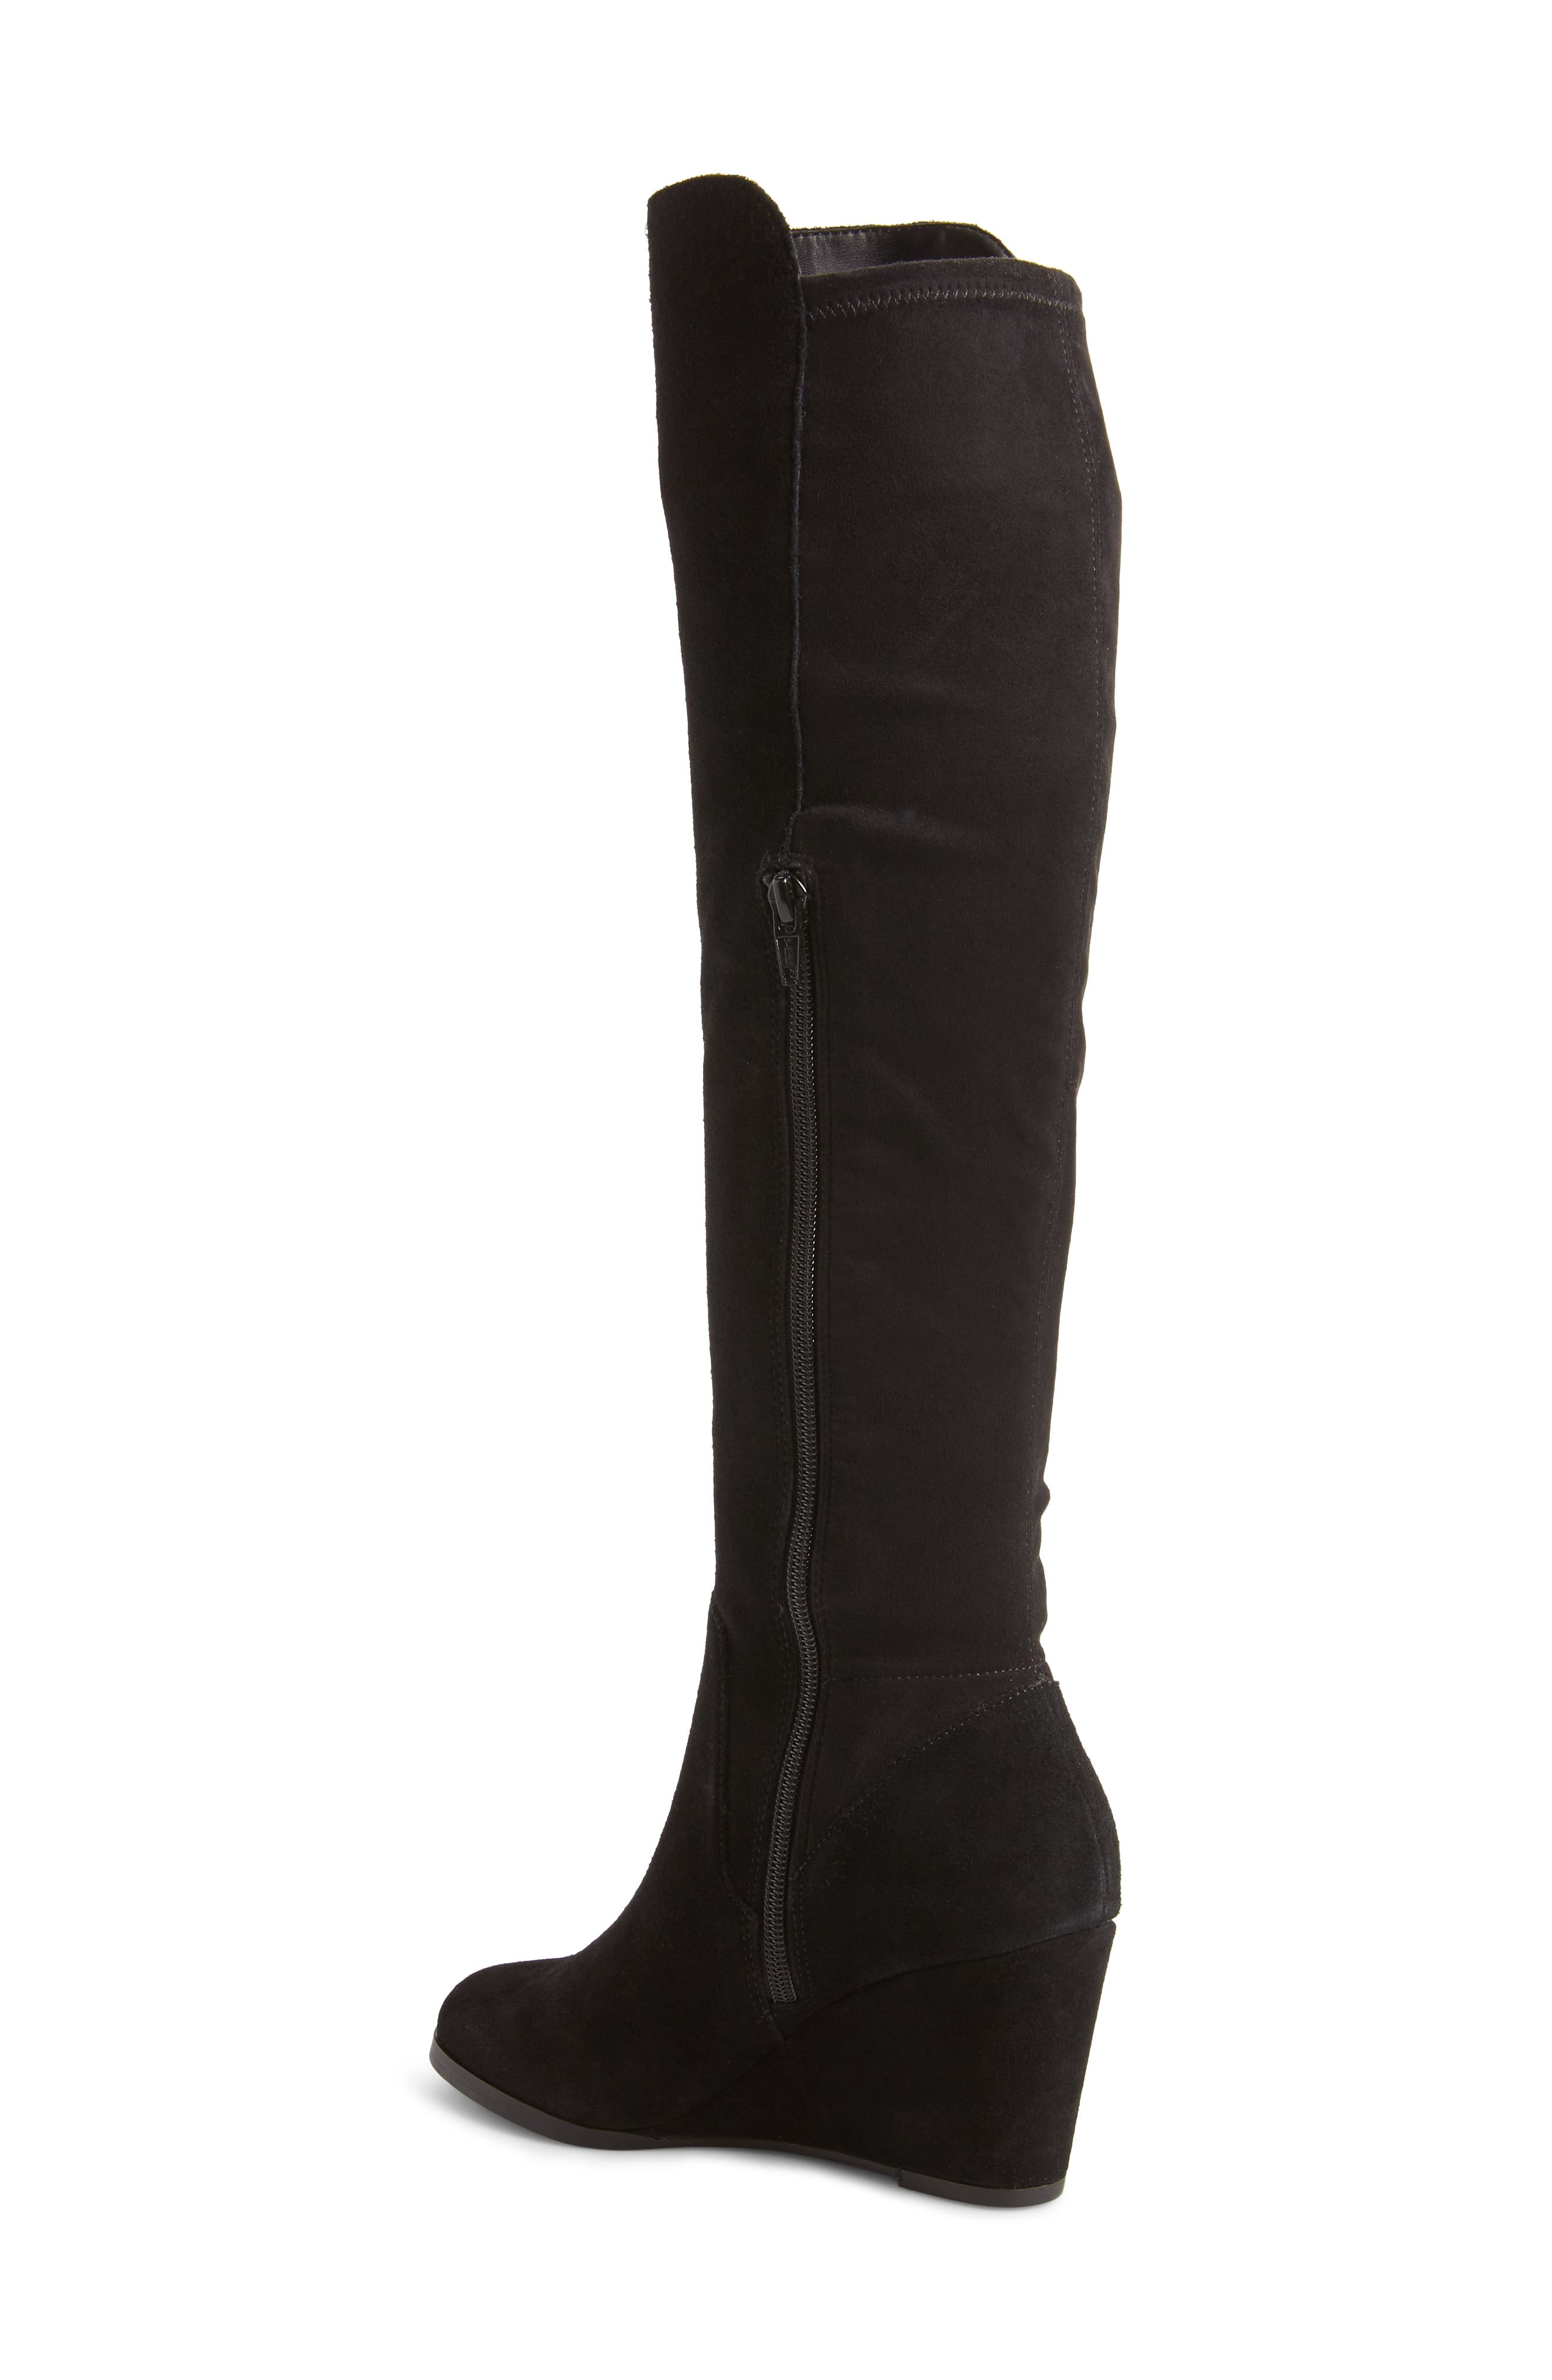 SOLE SOCIETY, Laila Boot, Alternate thumbnail 2, color, 001